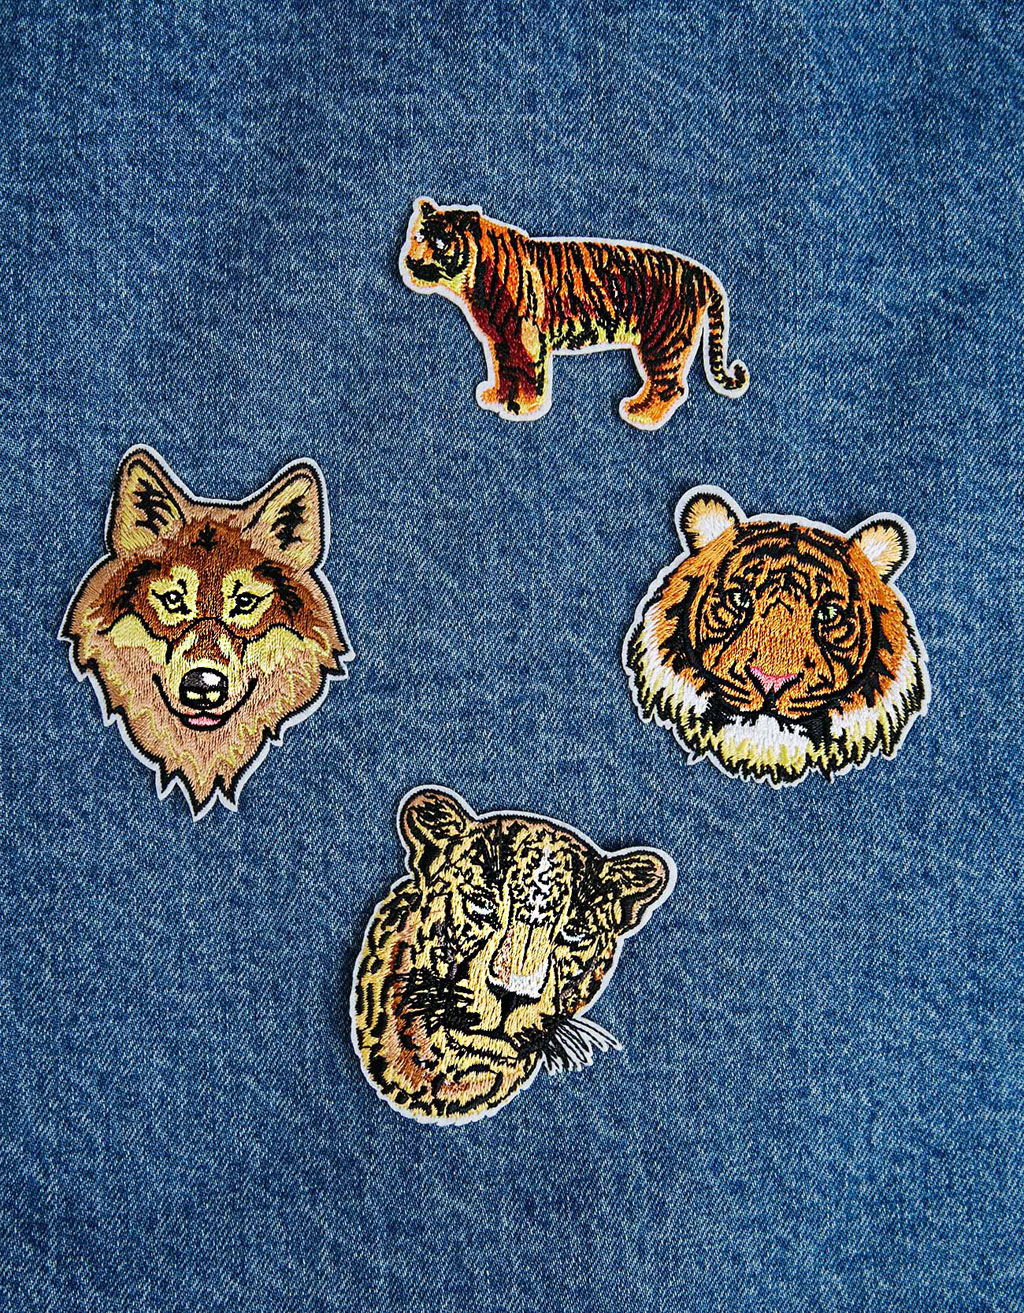 Set of 4 animal patches